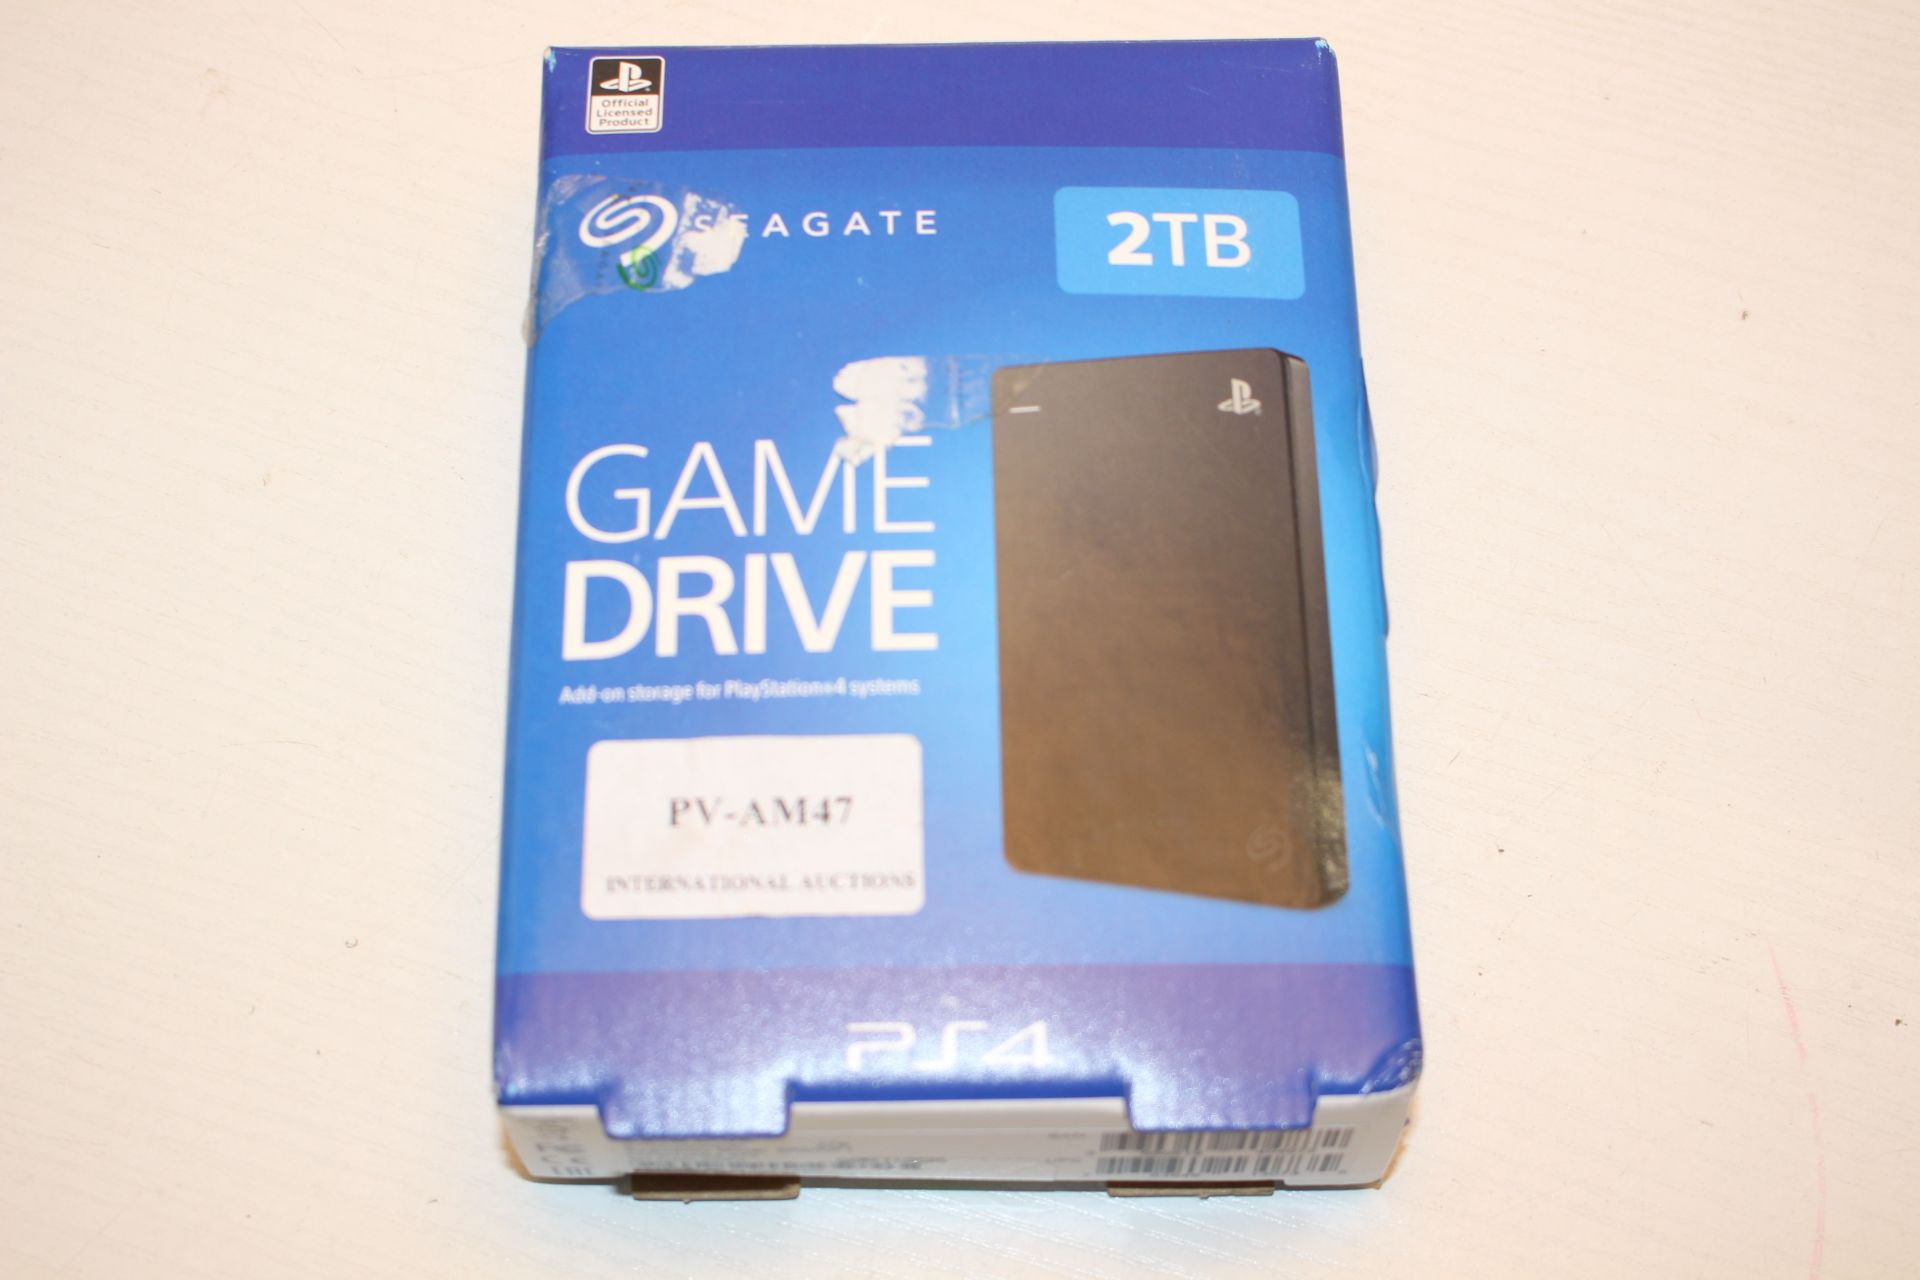 BOXED SEAGATE GAME DRIVE 2TB FOR PS4 RRP £83.77Condition ReportAppraisal Available on Request- All